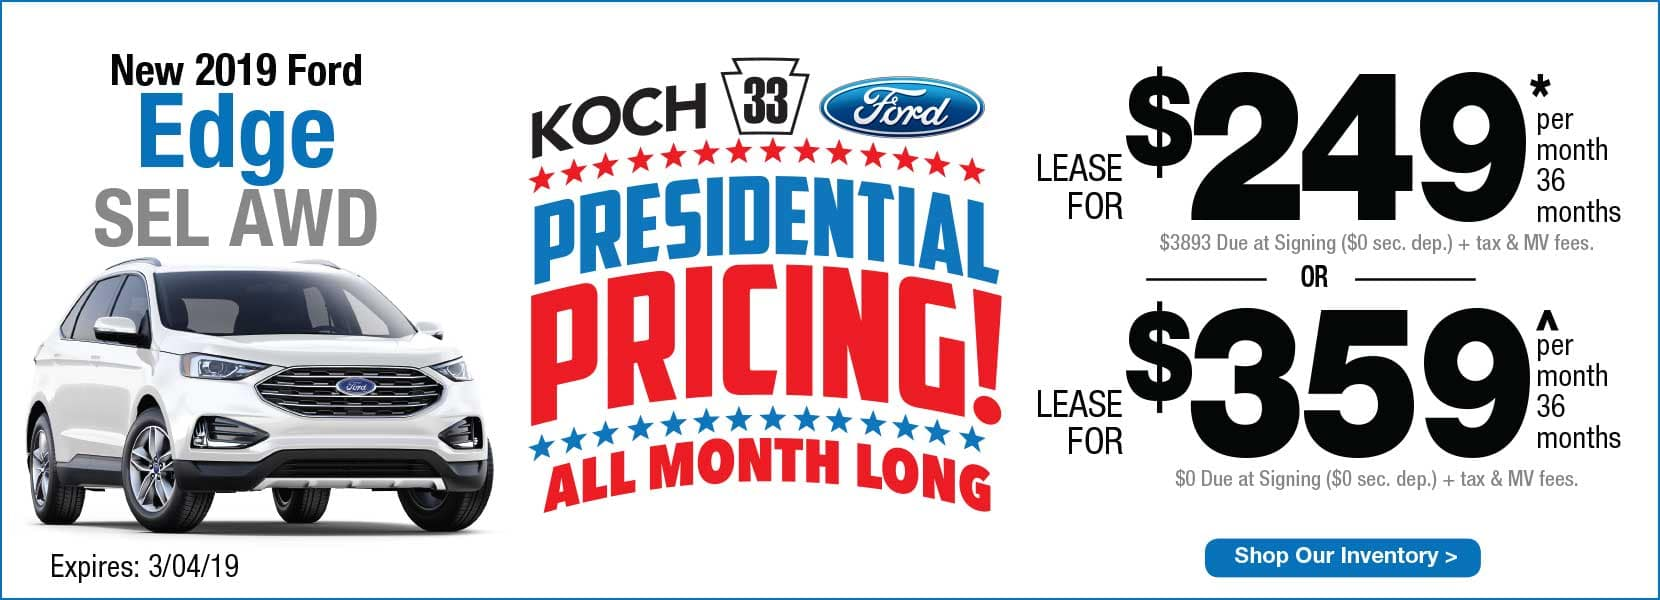 Ecosport Stk F  Cyl Auto Msrp  Down Payment Lease  Down Pymt St Mo Pymt Sec Dep  Bank Fee  Due At Signing